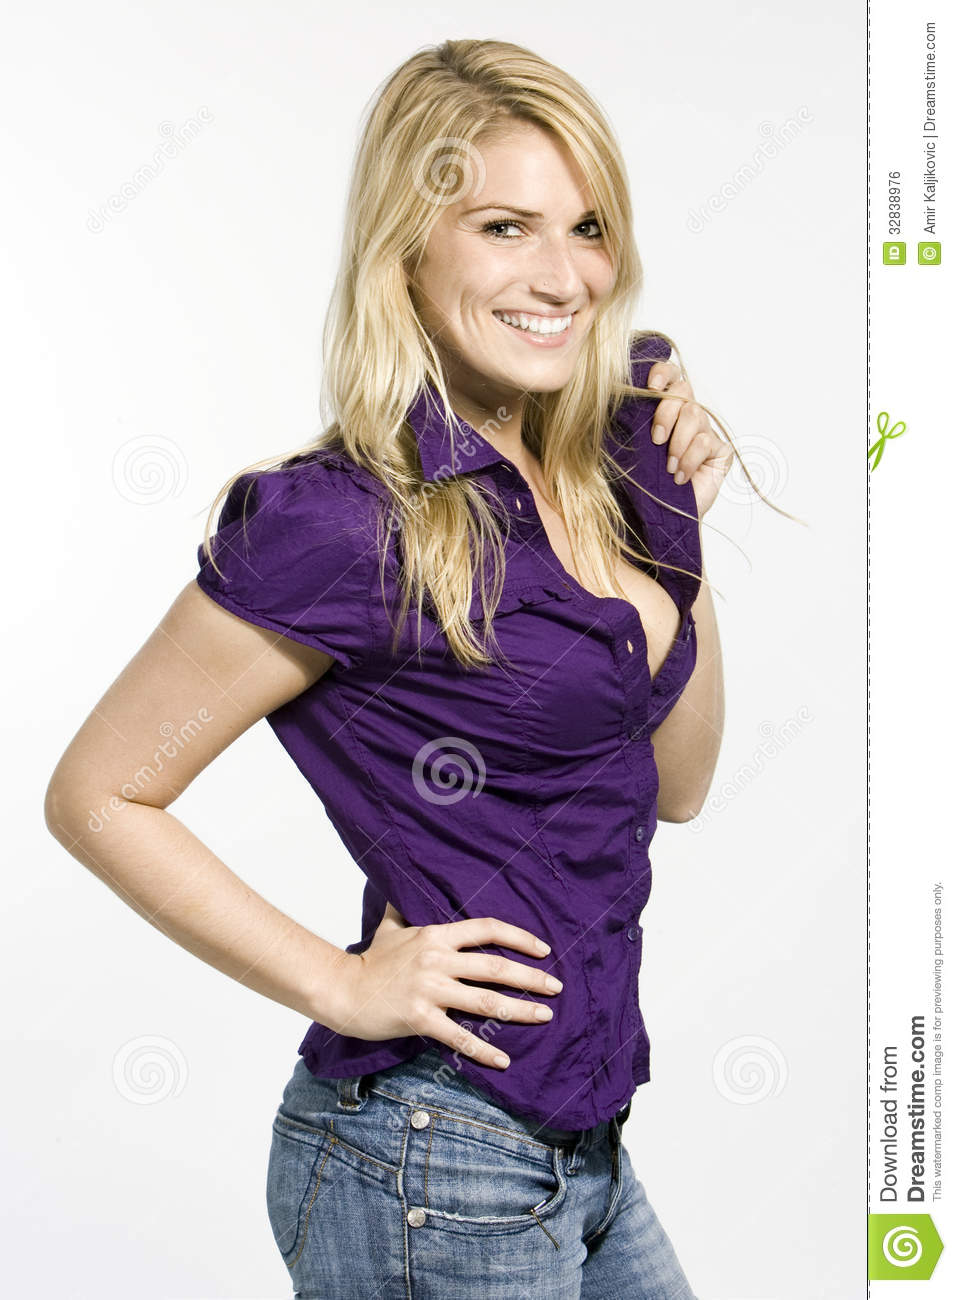 Beautiful Busty Woman Stock Photo Image Of Portrait - 32838976-6519